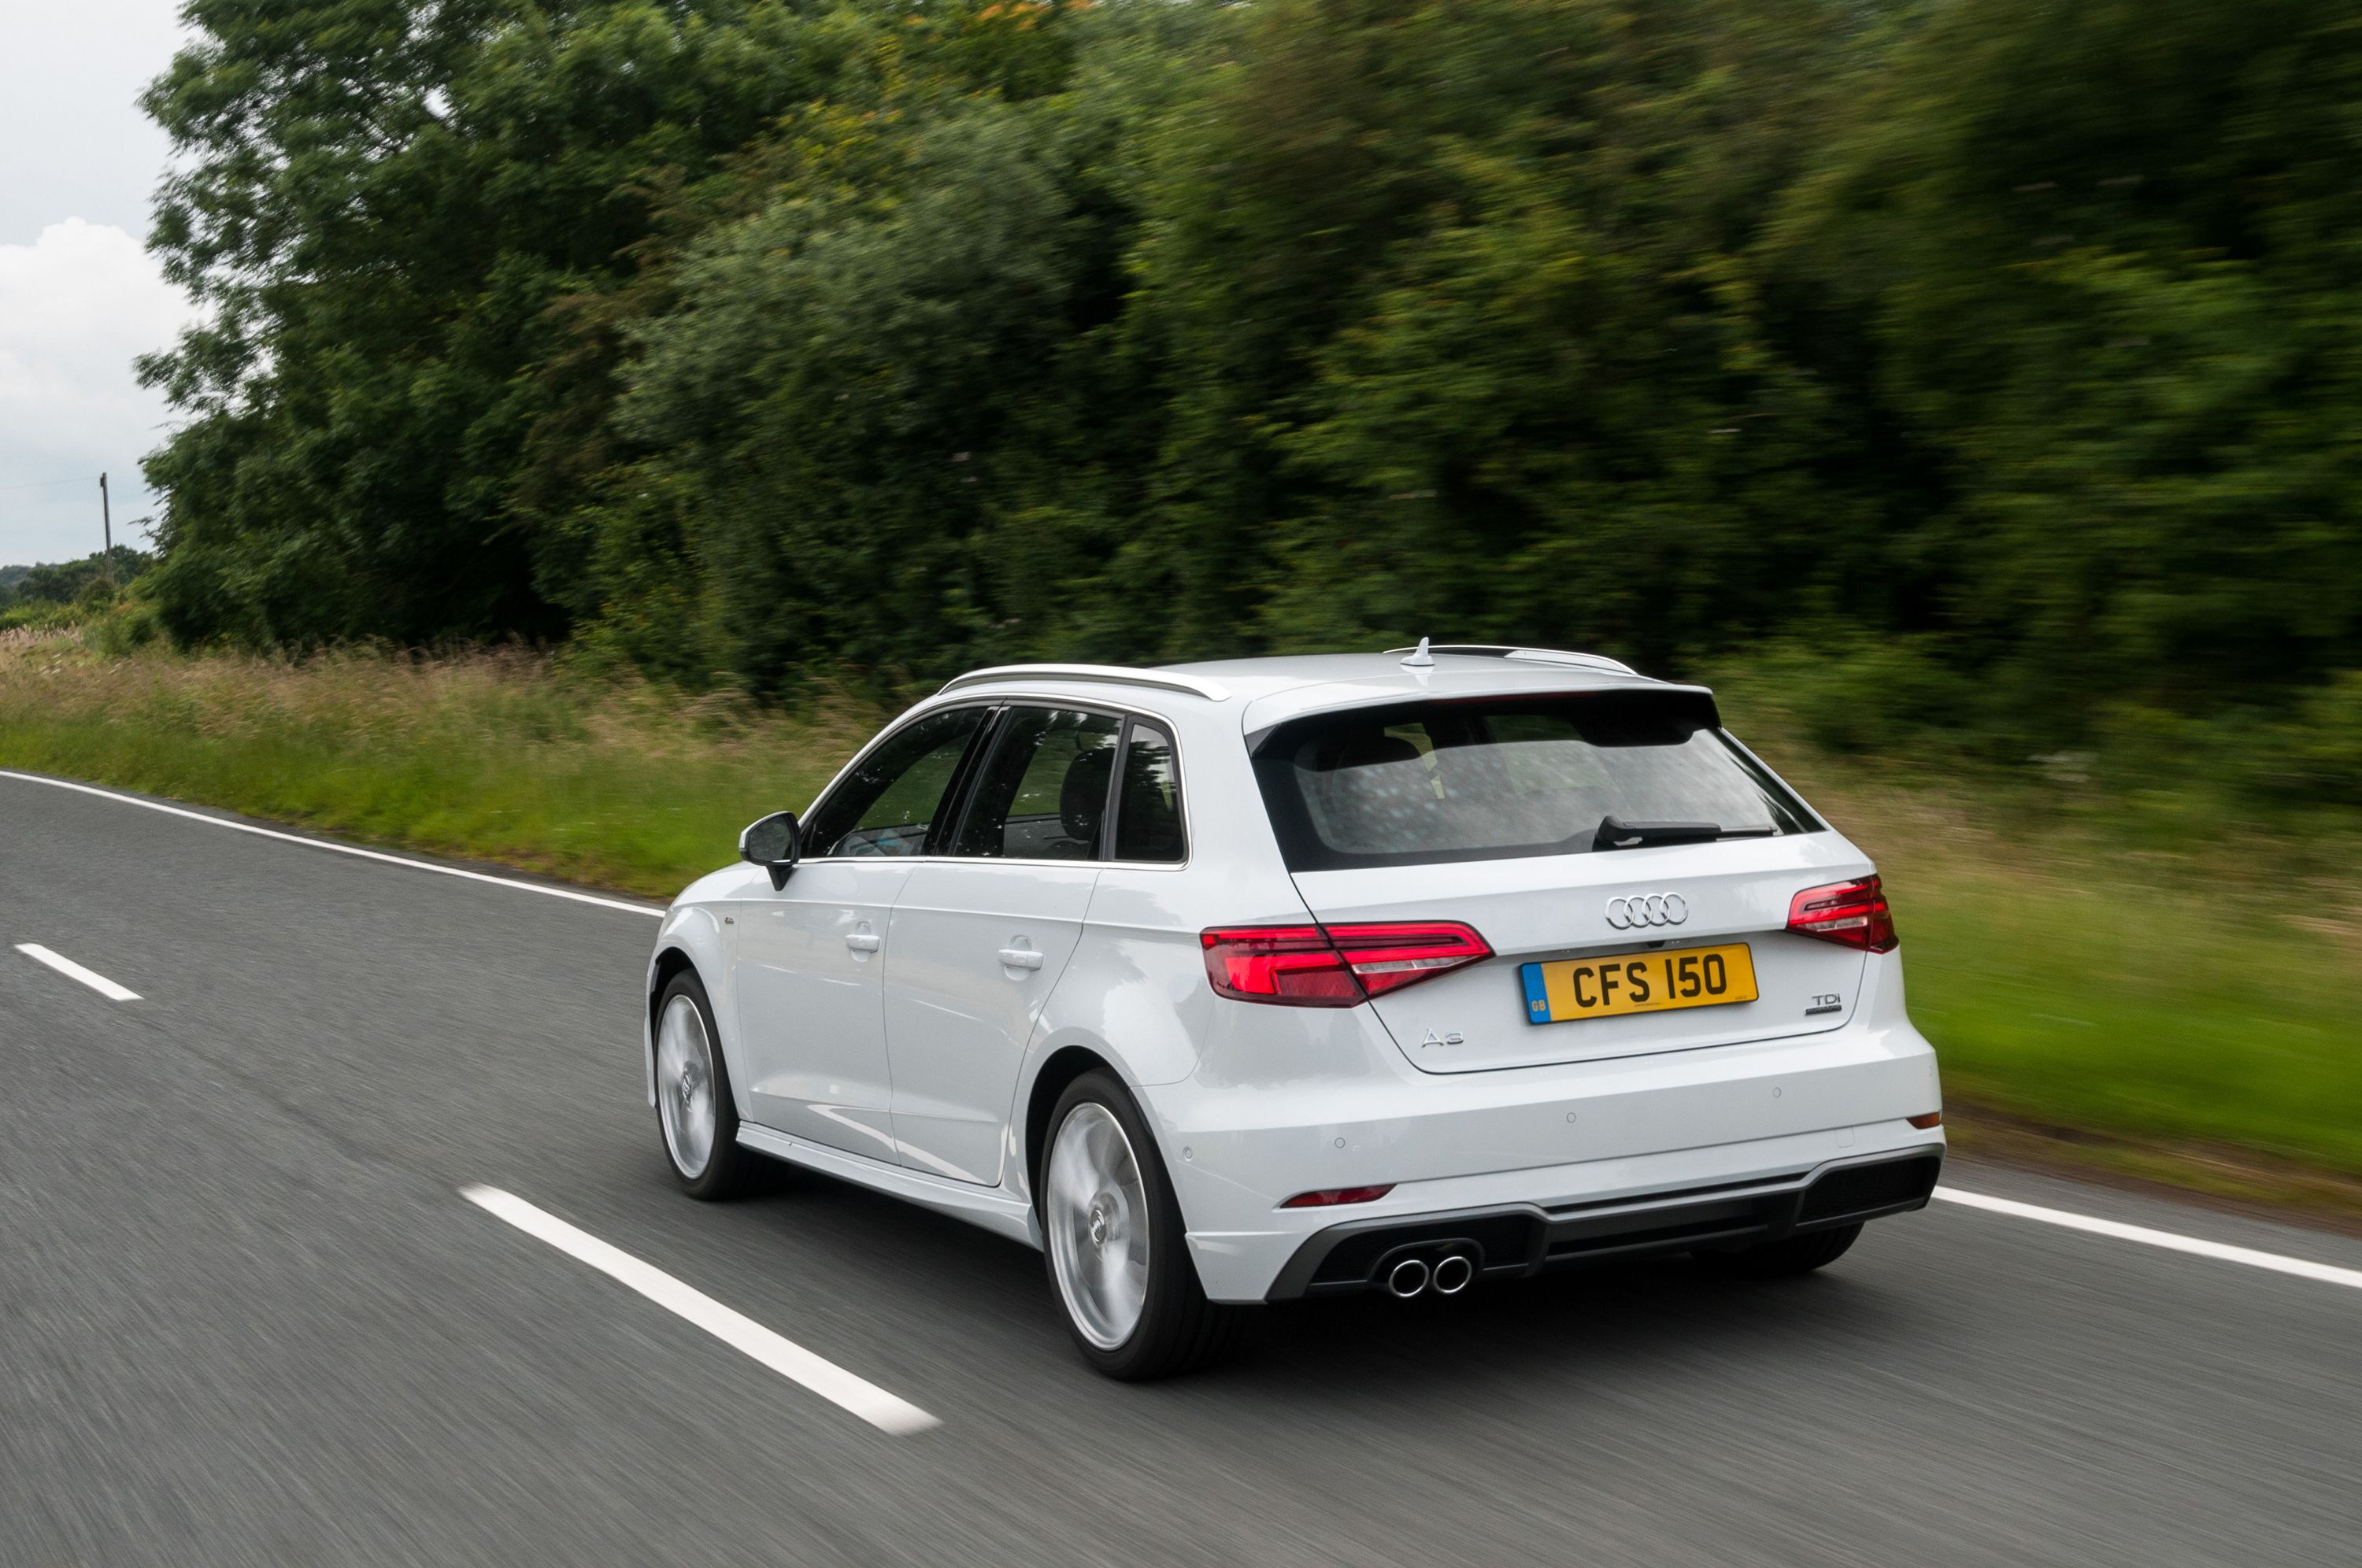 Rear view of the Audi A3 Sportback